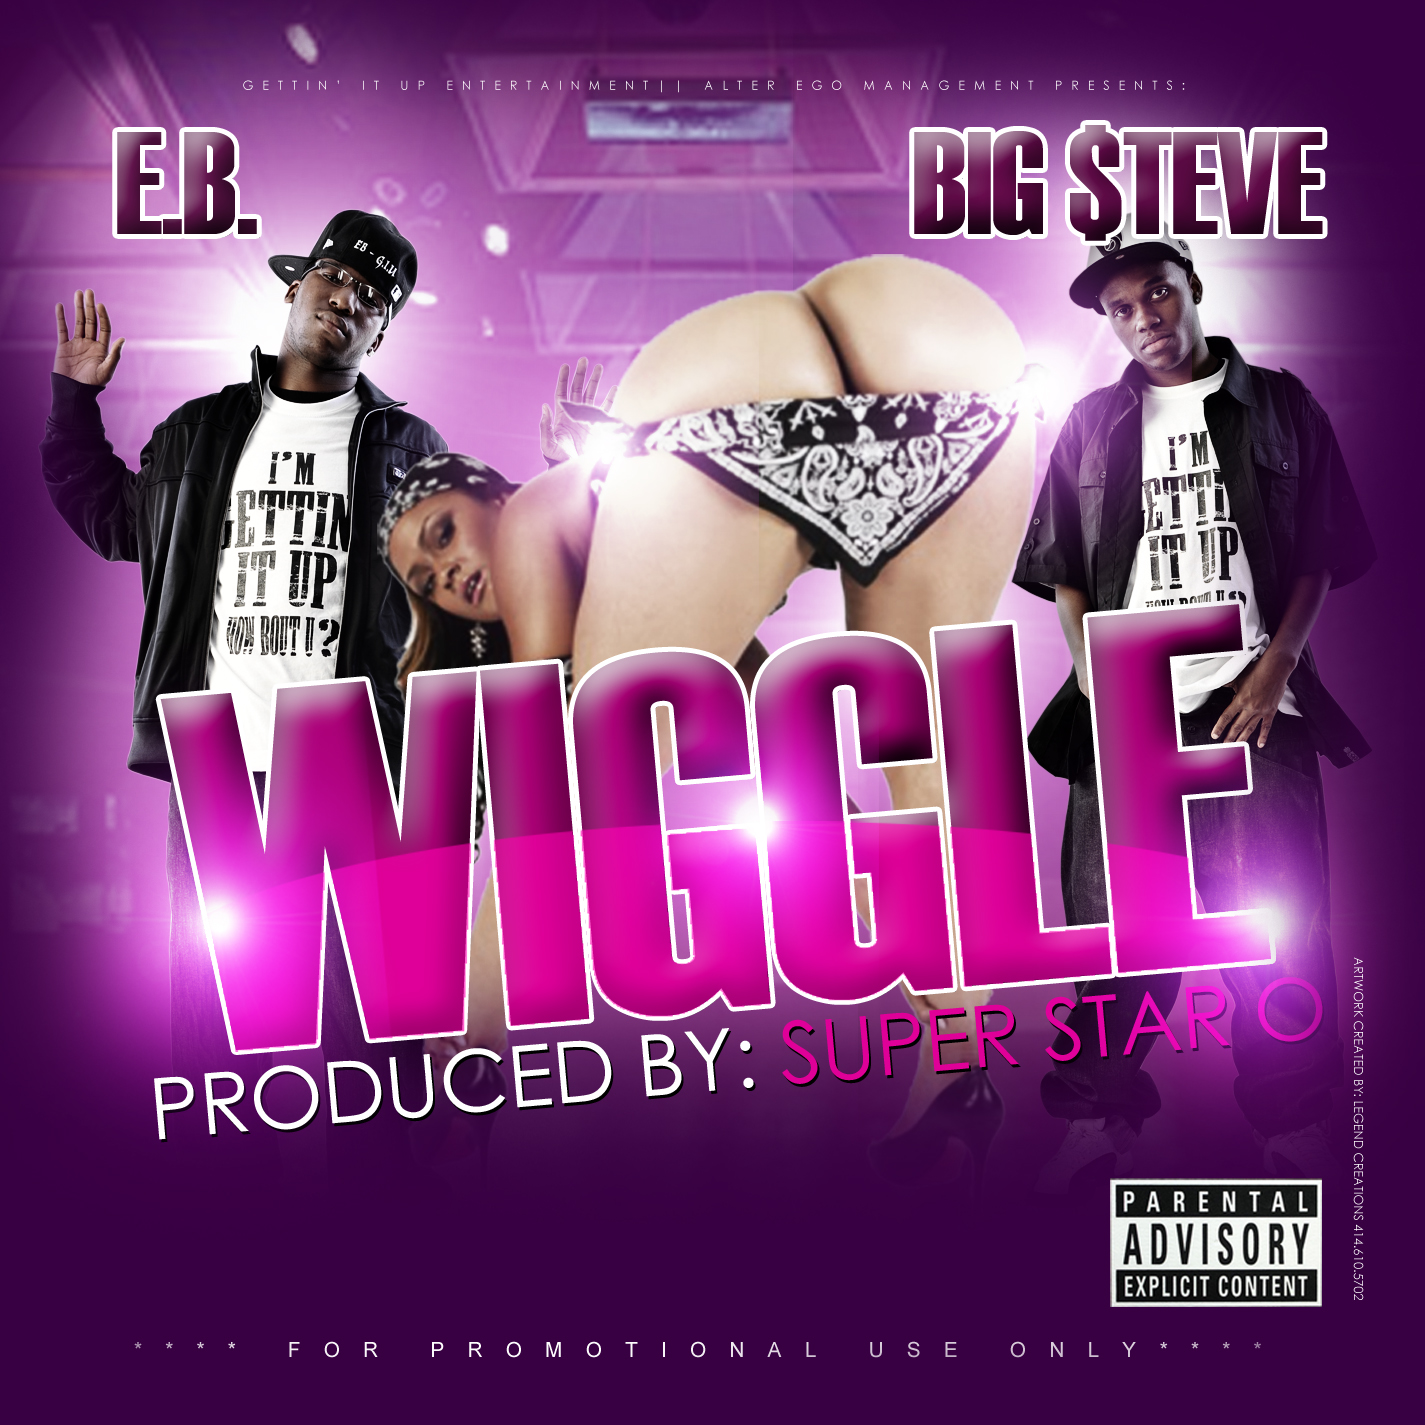 wiggle cd cover